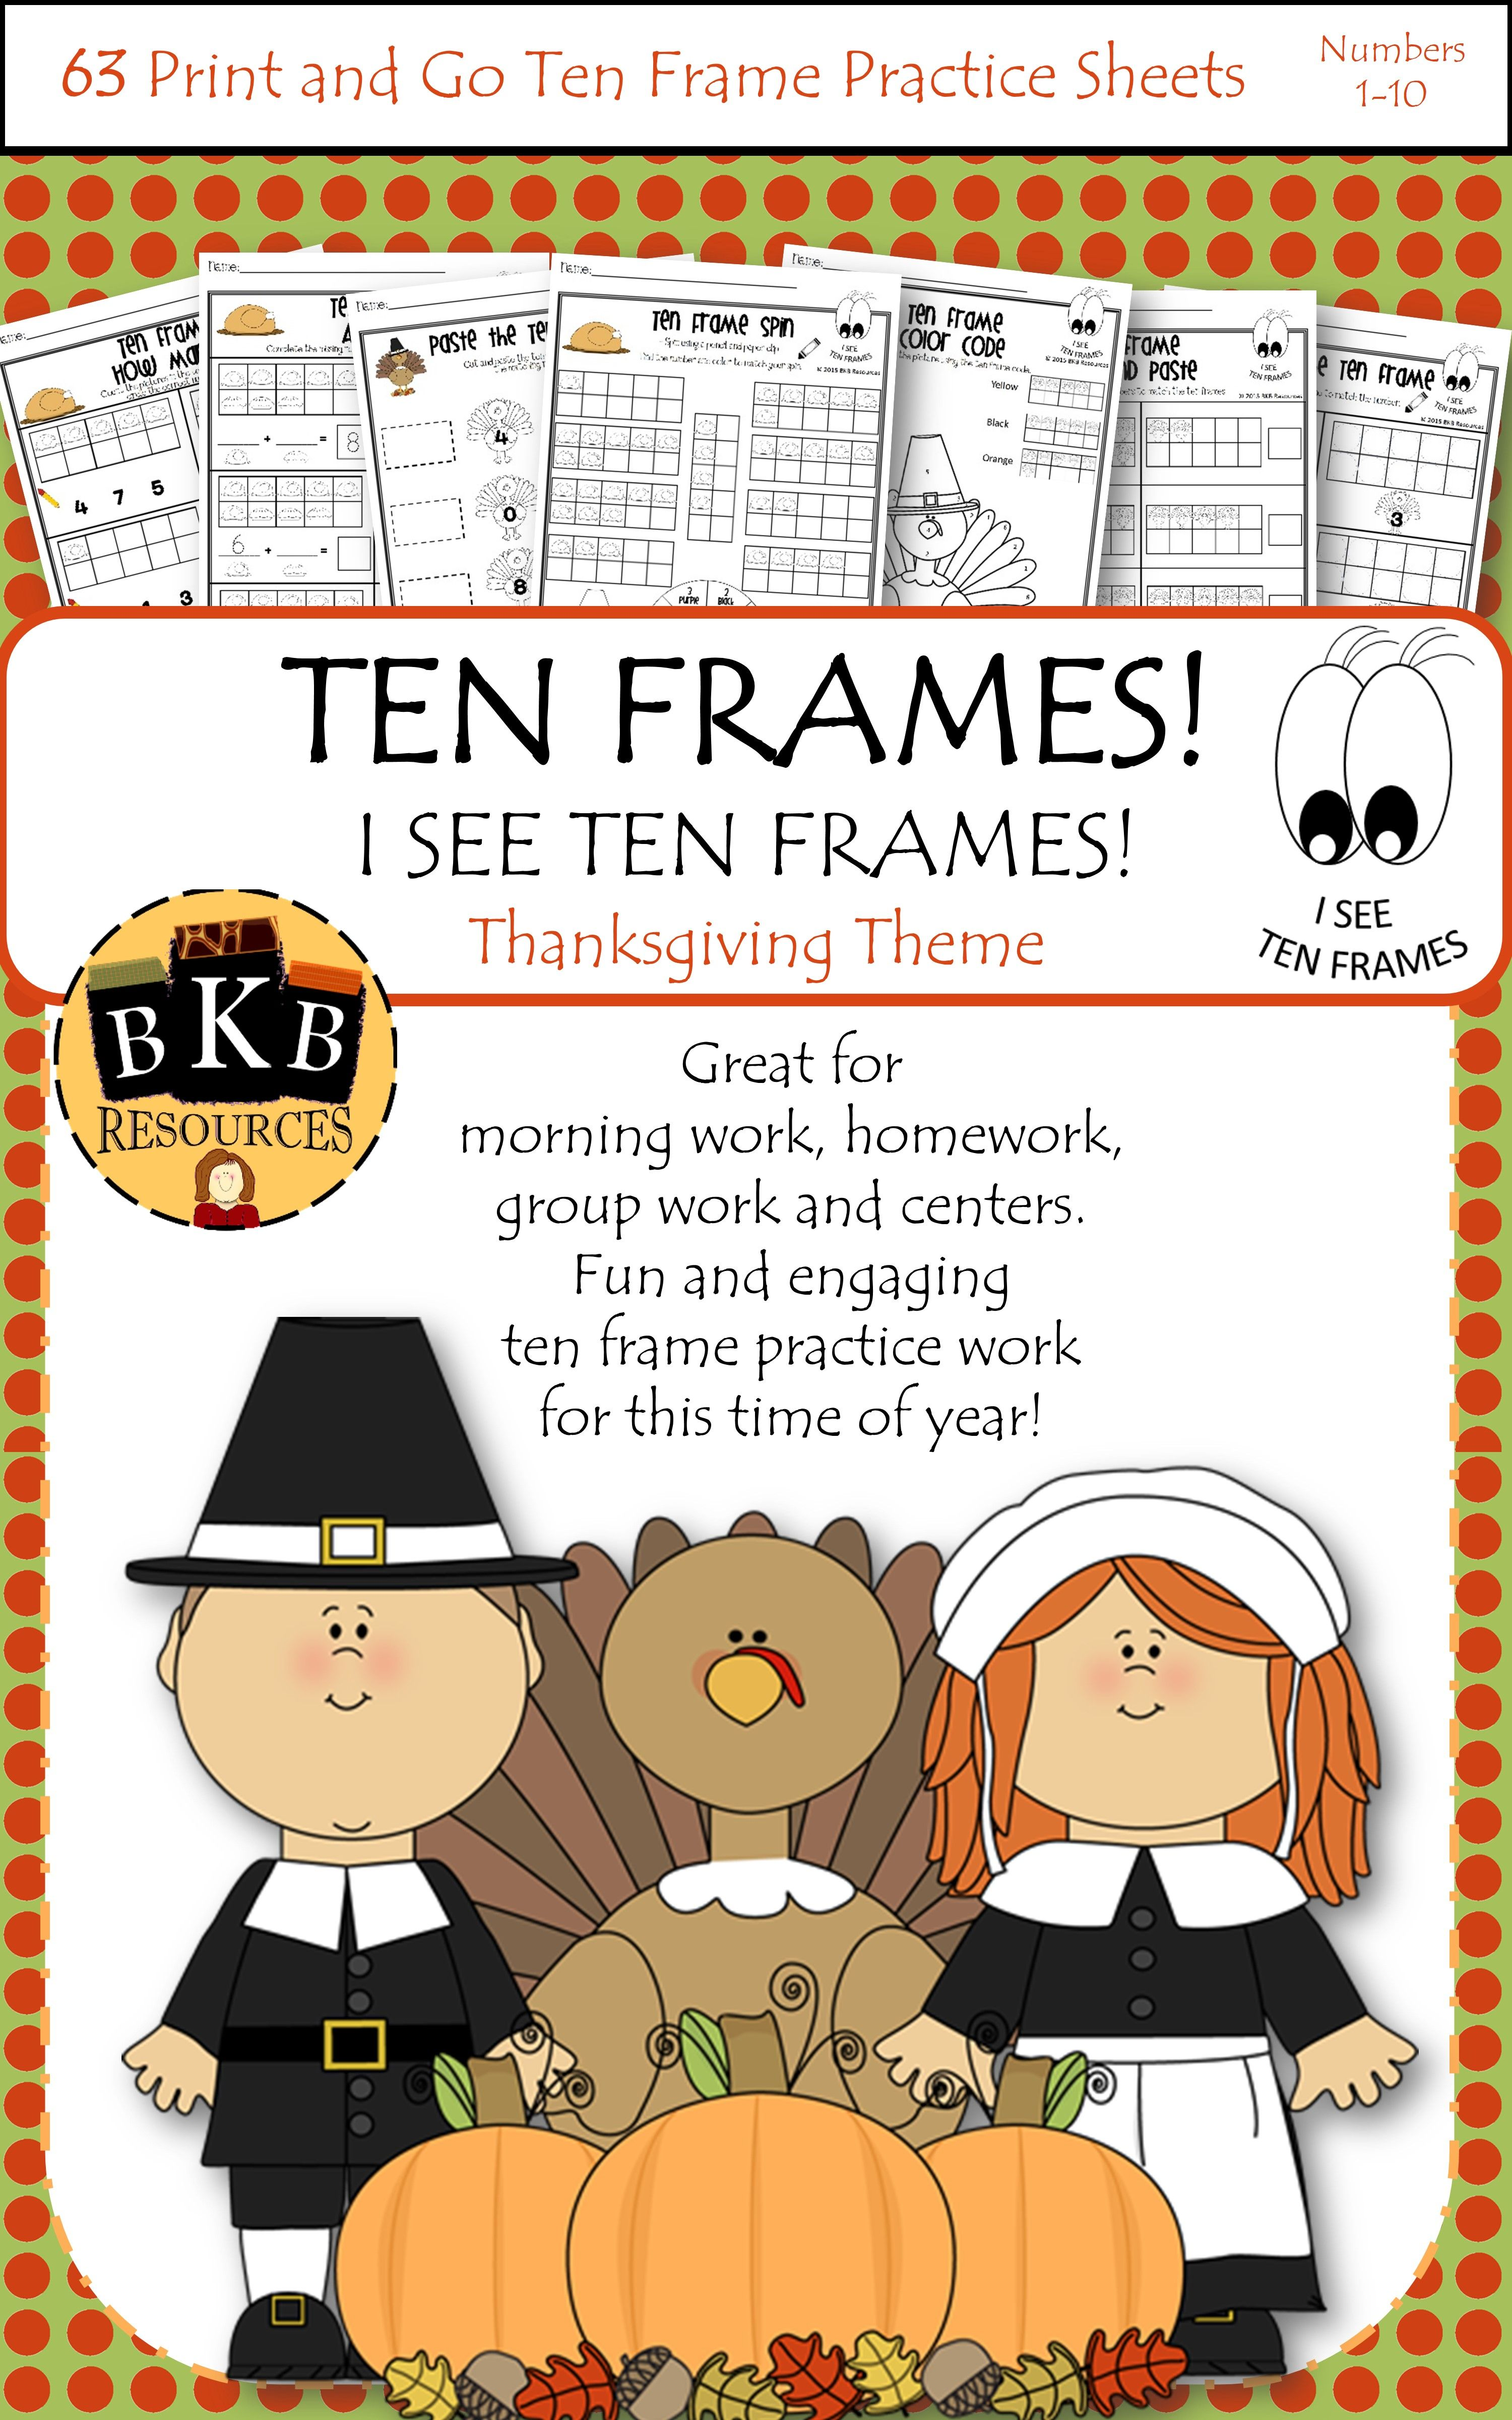 Pin On Teacher Resources And Clip Art Designs By Bkb